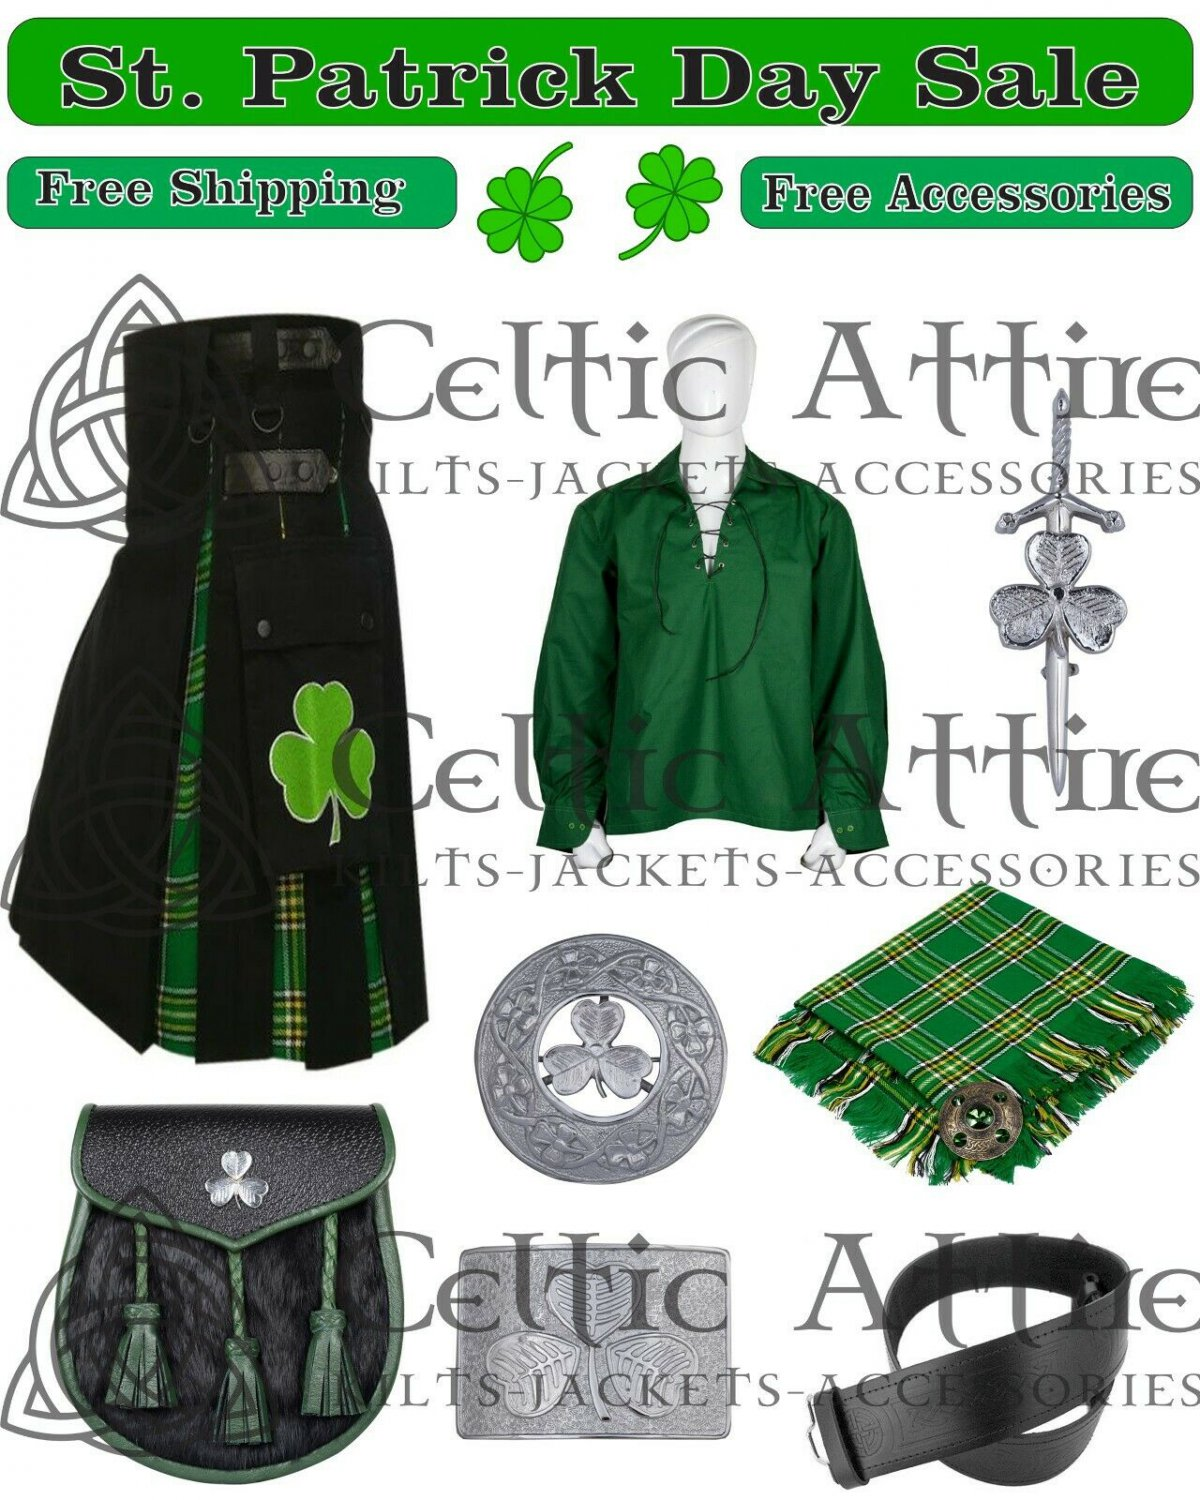 Premium Quality Shamrock Hybrid Kilt & Accessories For ST. PATRICK DAY Parade